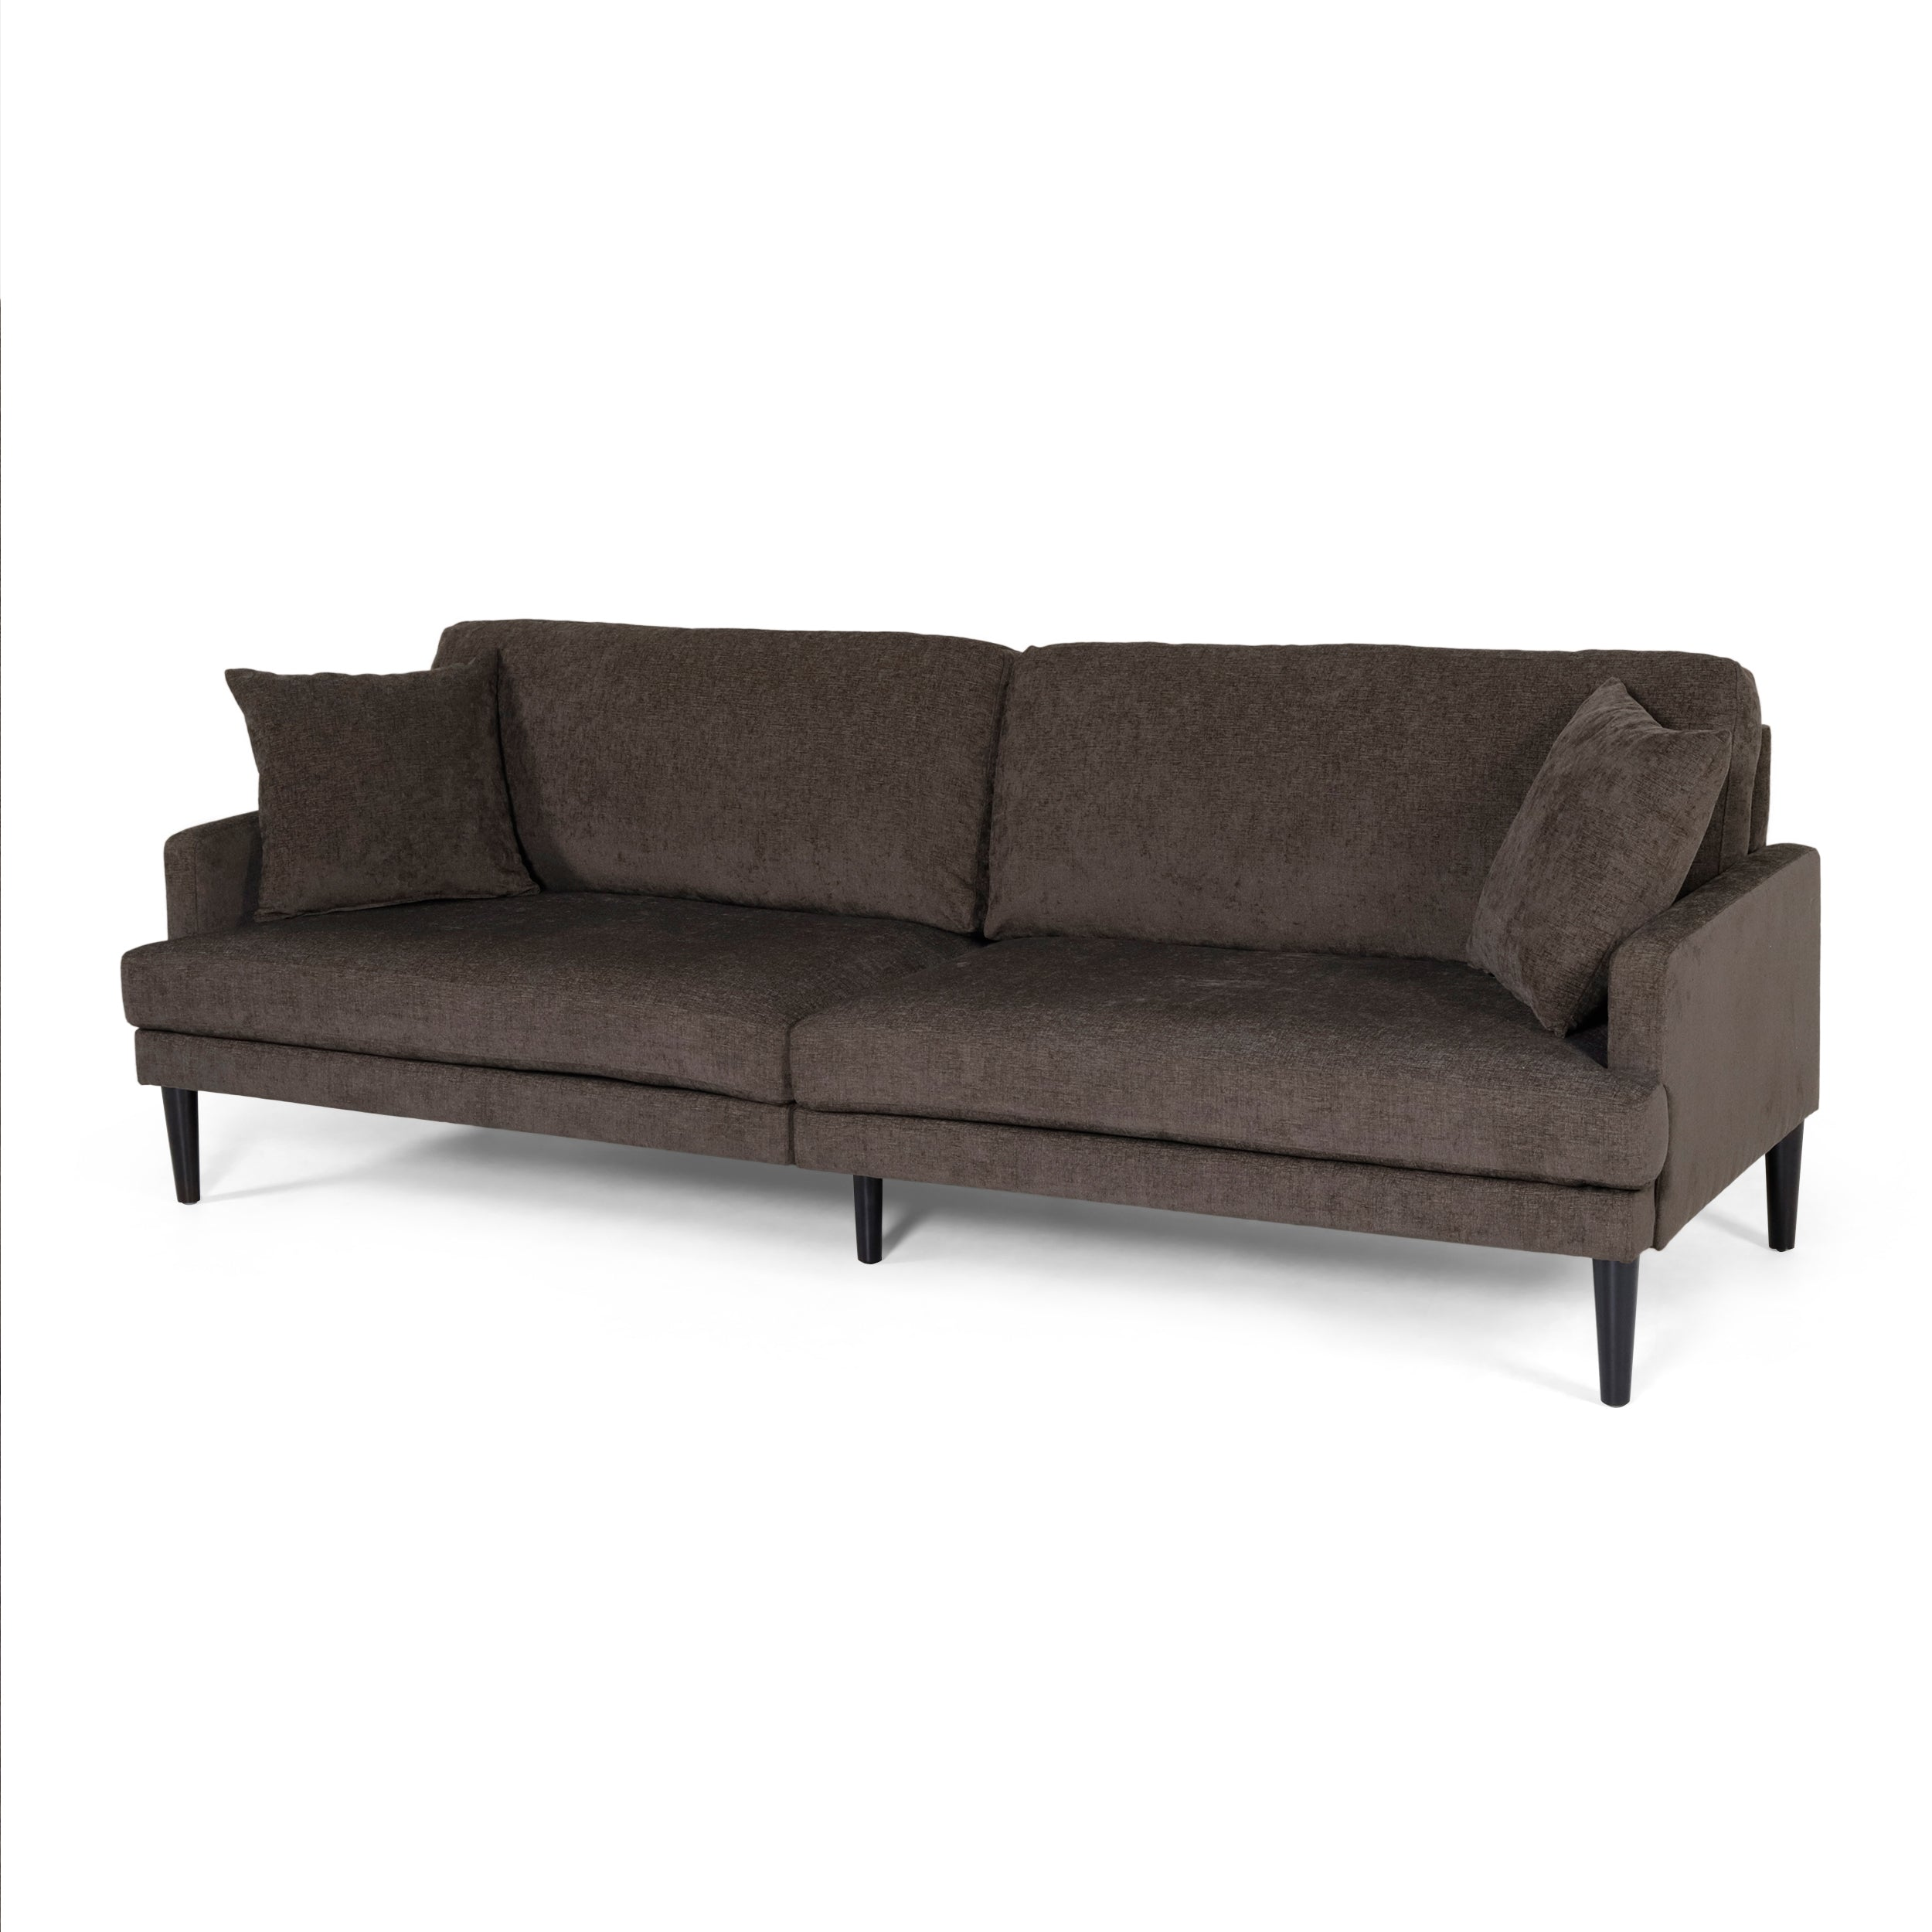 Adut Contemporary 3 Seater Fabric Sofa with Accent Pillows